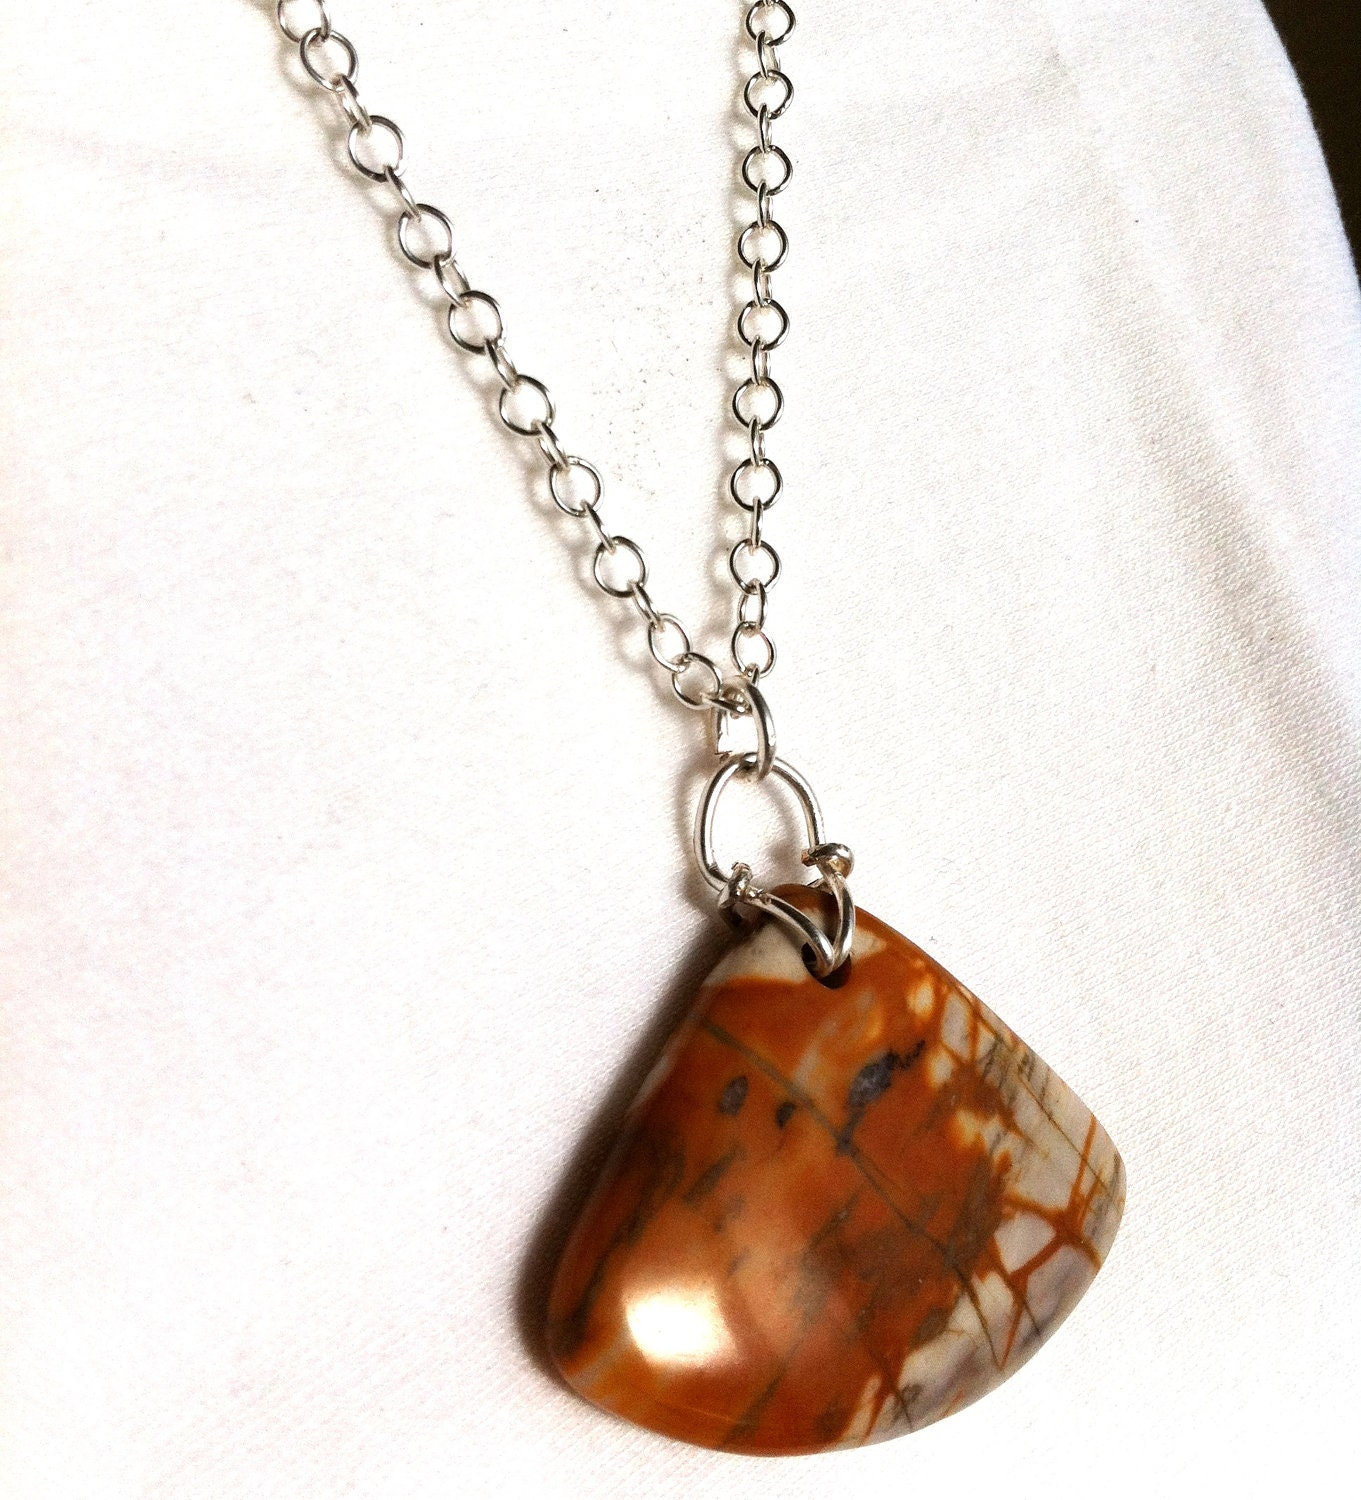 CARAMEL TOPPING - Picasso Jasper Fan Pendant Necklace